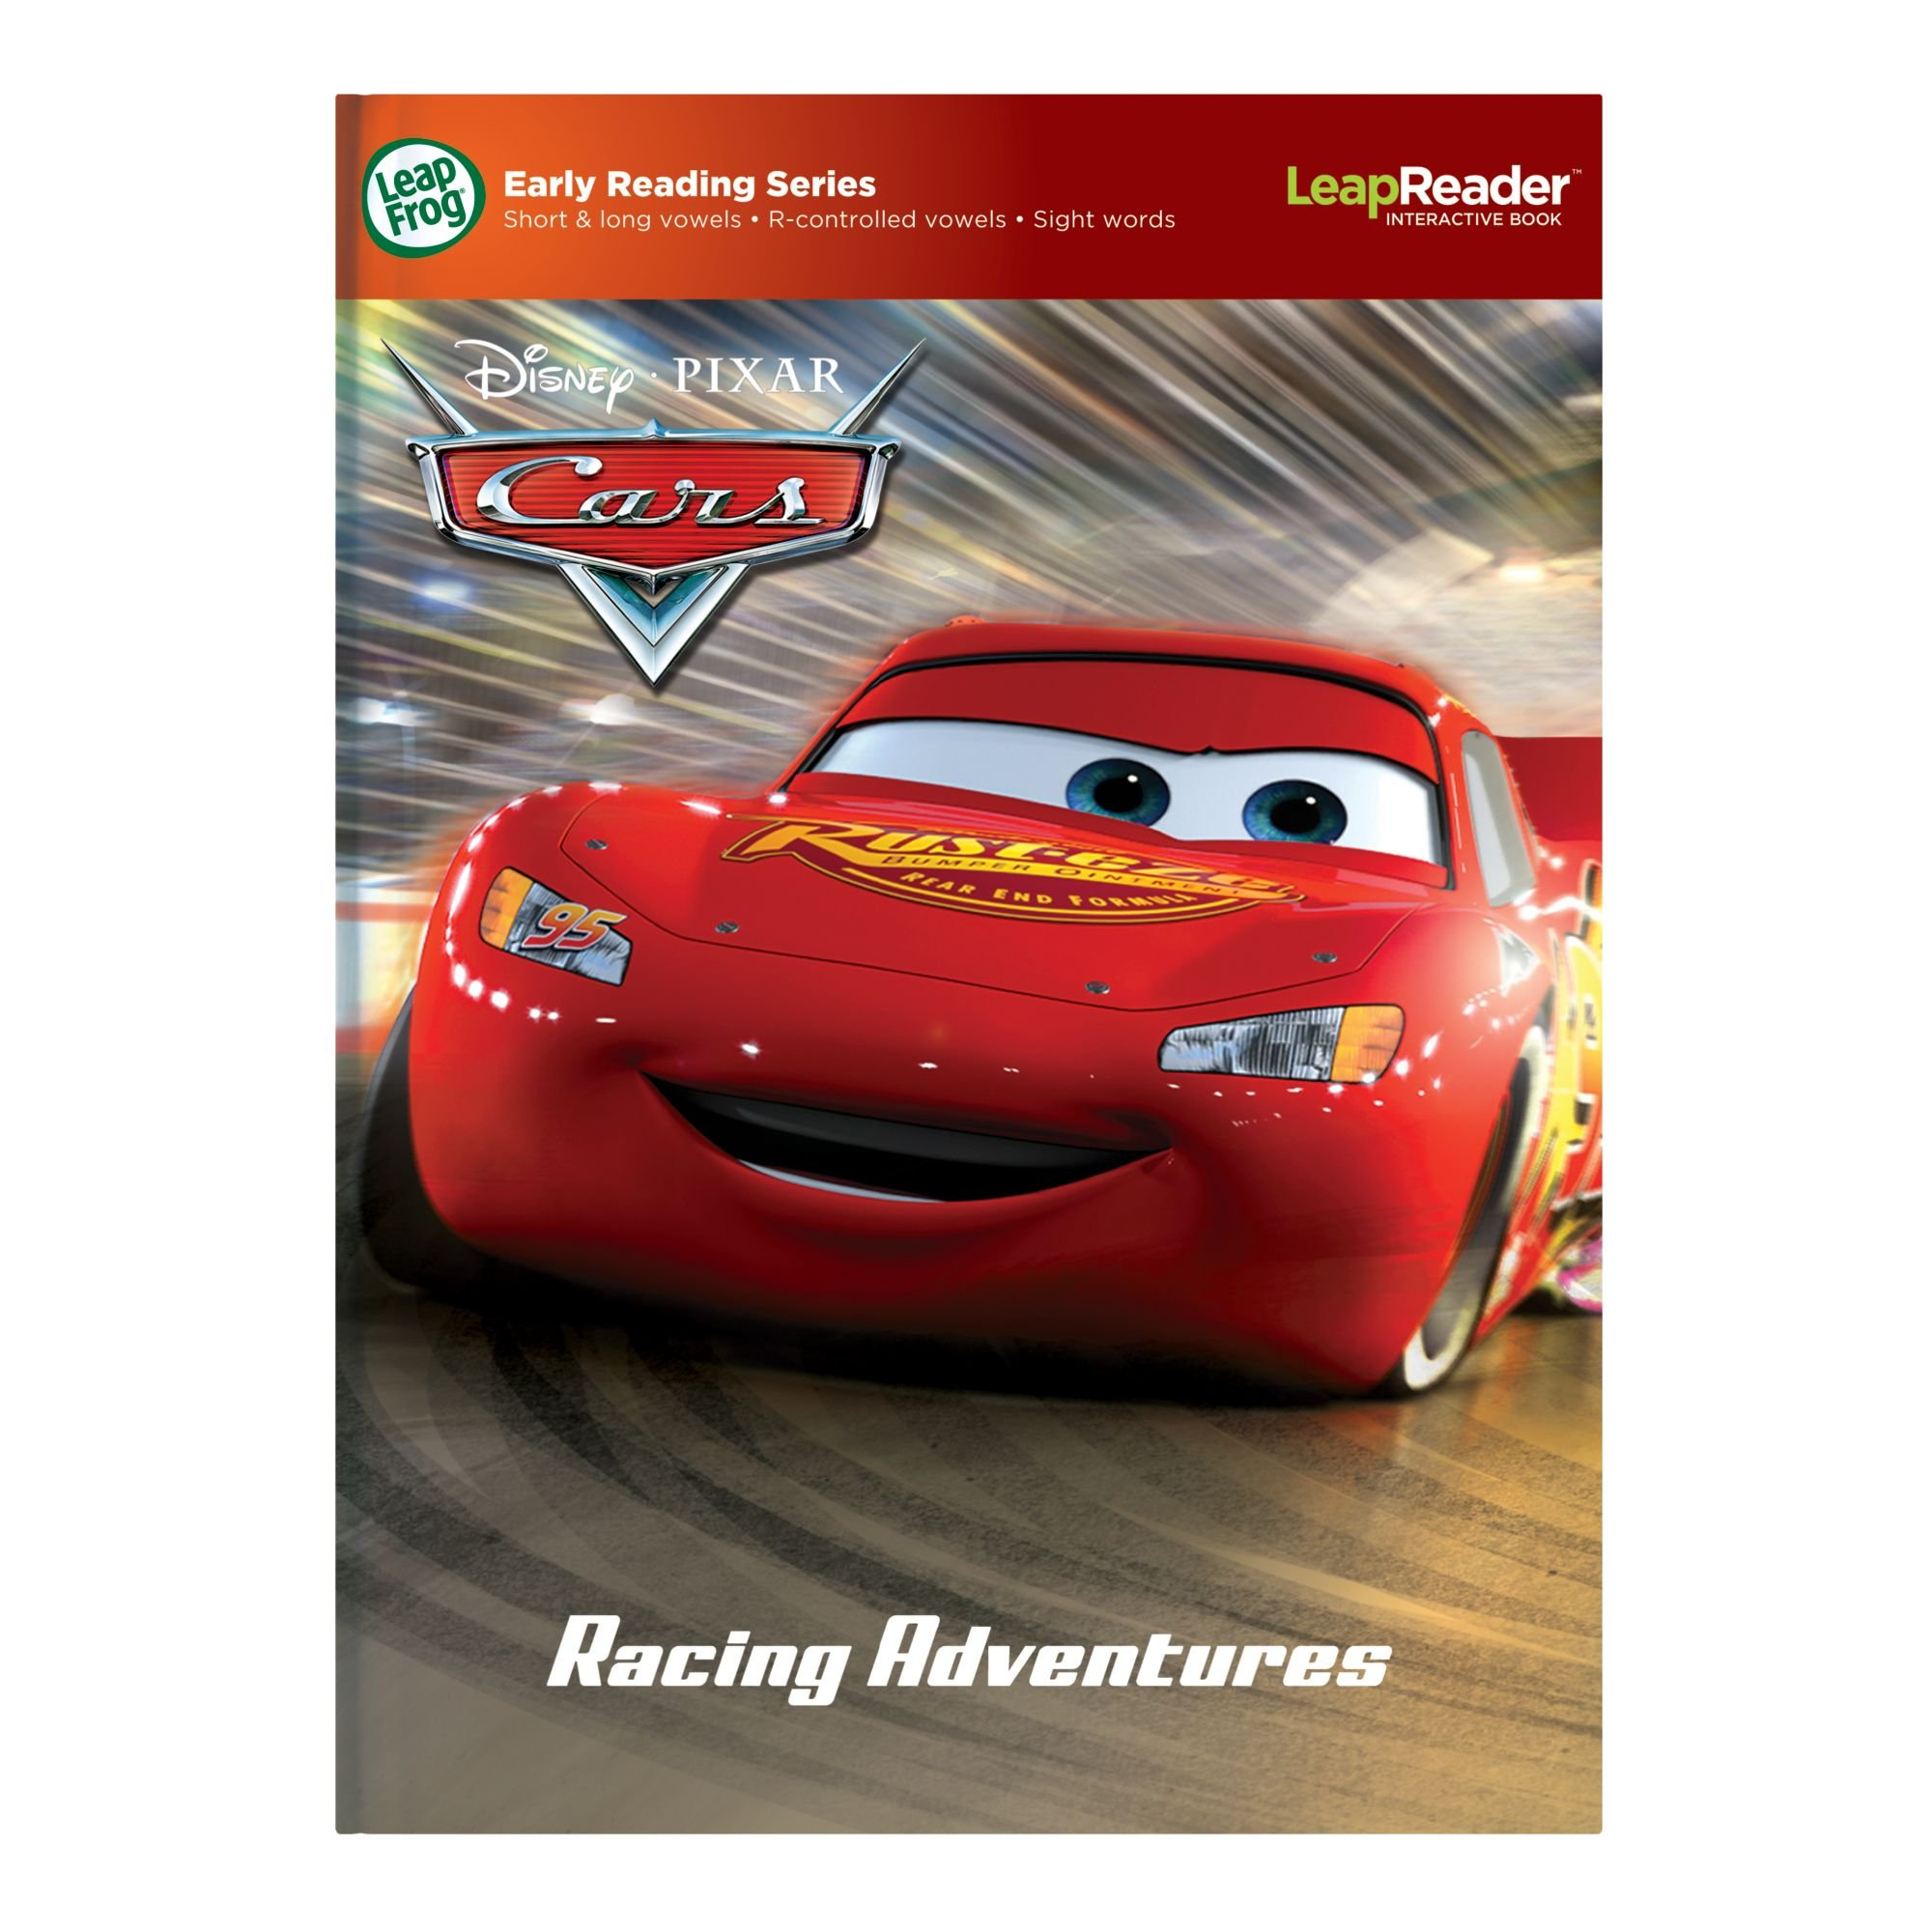 LeapFrog LeapReader Book: Disney·Pixar Cars: Racing Adventures (works with Tag) by LeapFrog (Image #8)